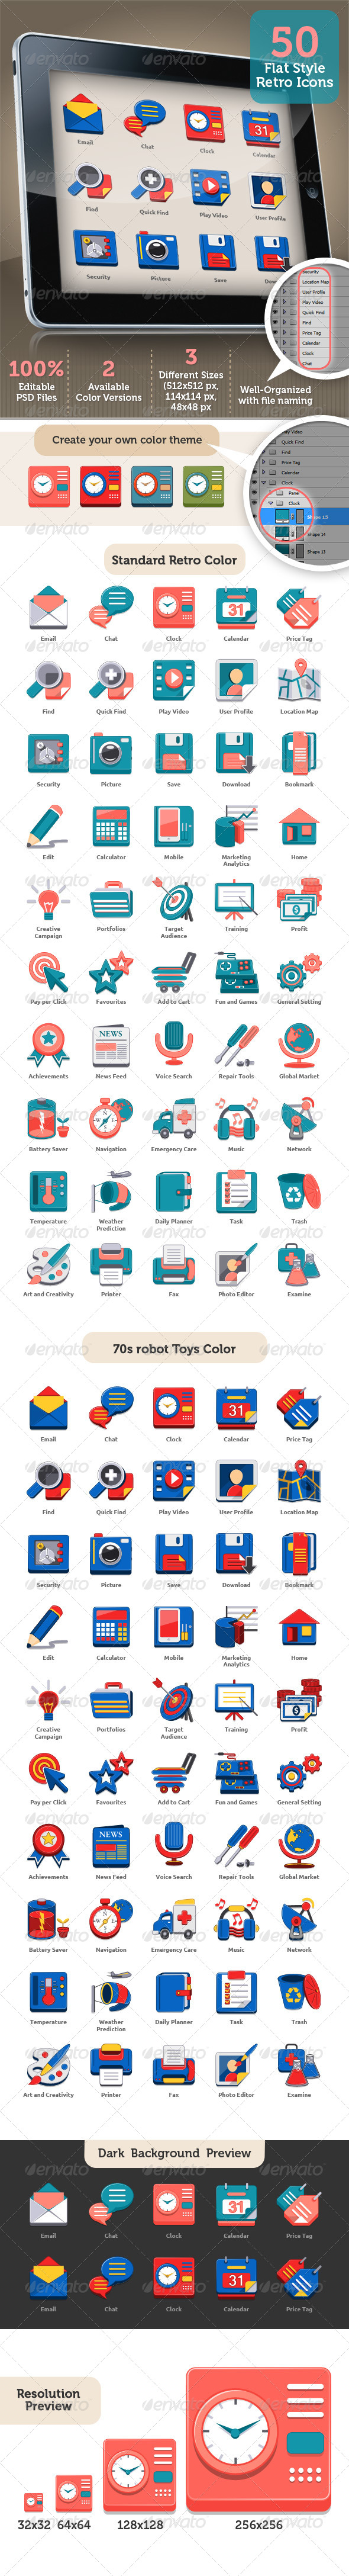 Fun And Flat Retro Style Icon Set For Any Purpose - Icons